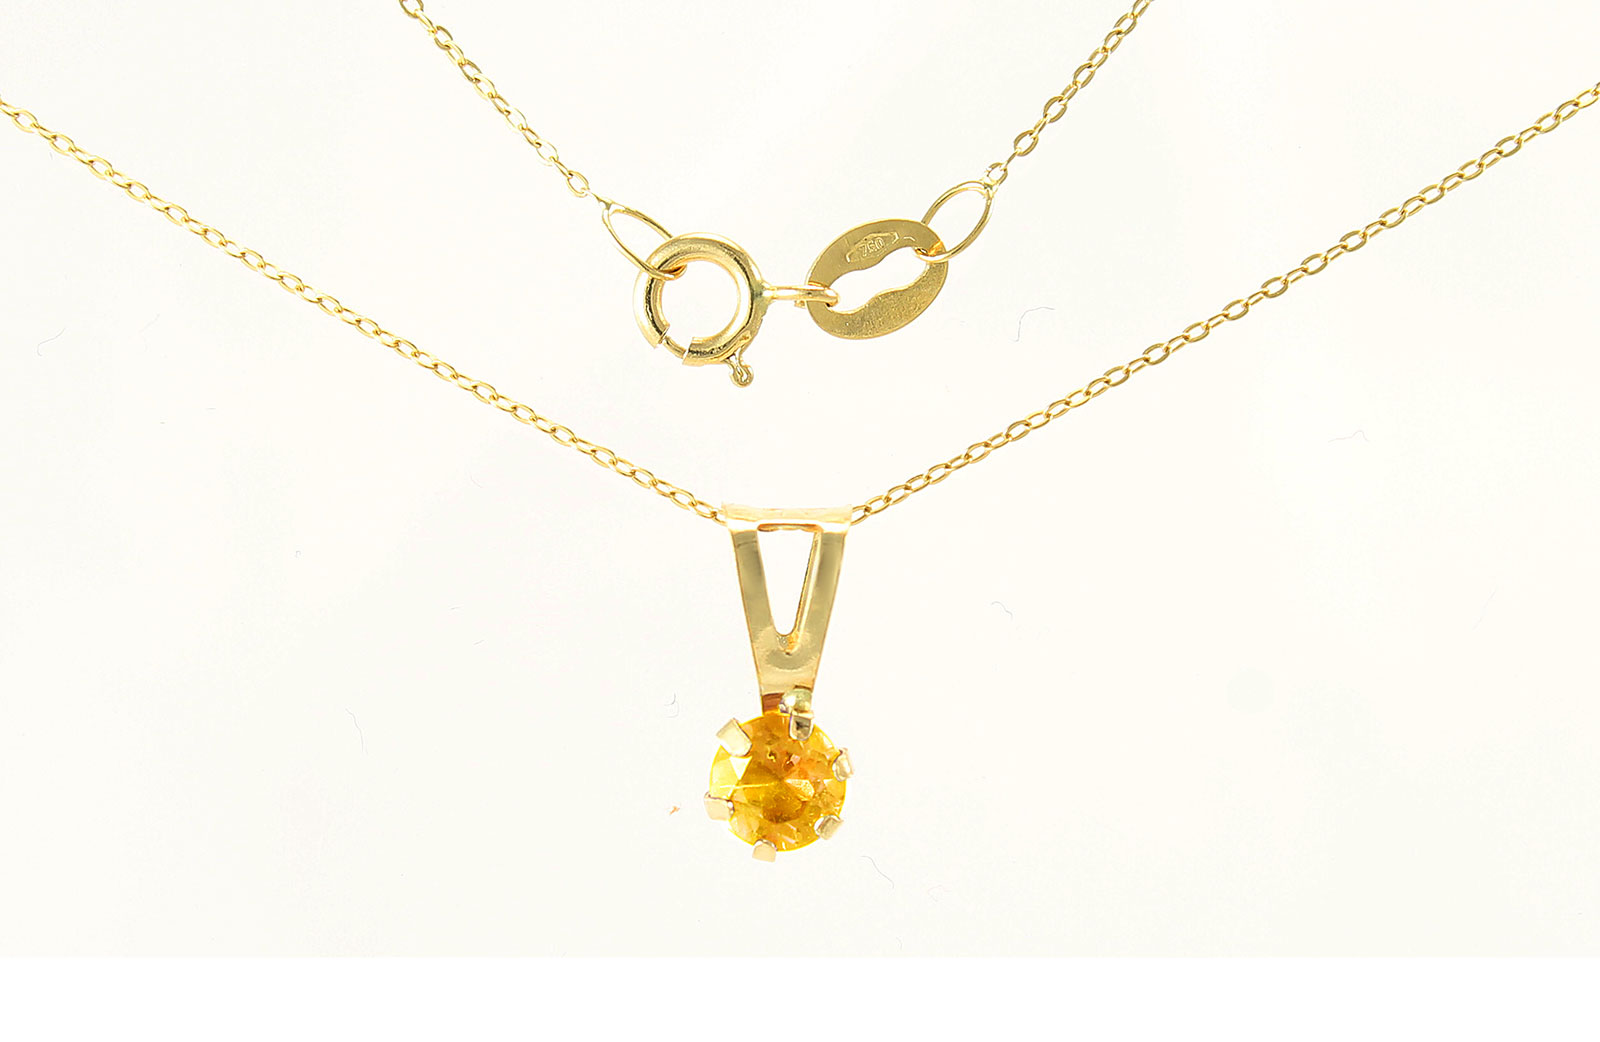 VP Jewels: 4mm Genuine Citrine Solitaire Pendant + Chain